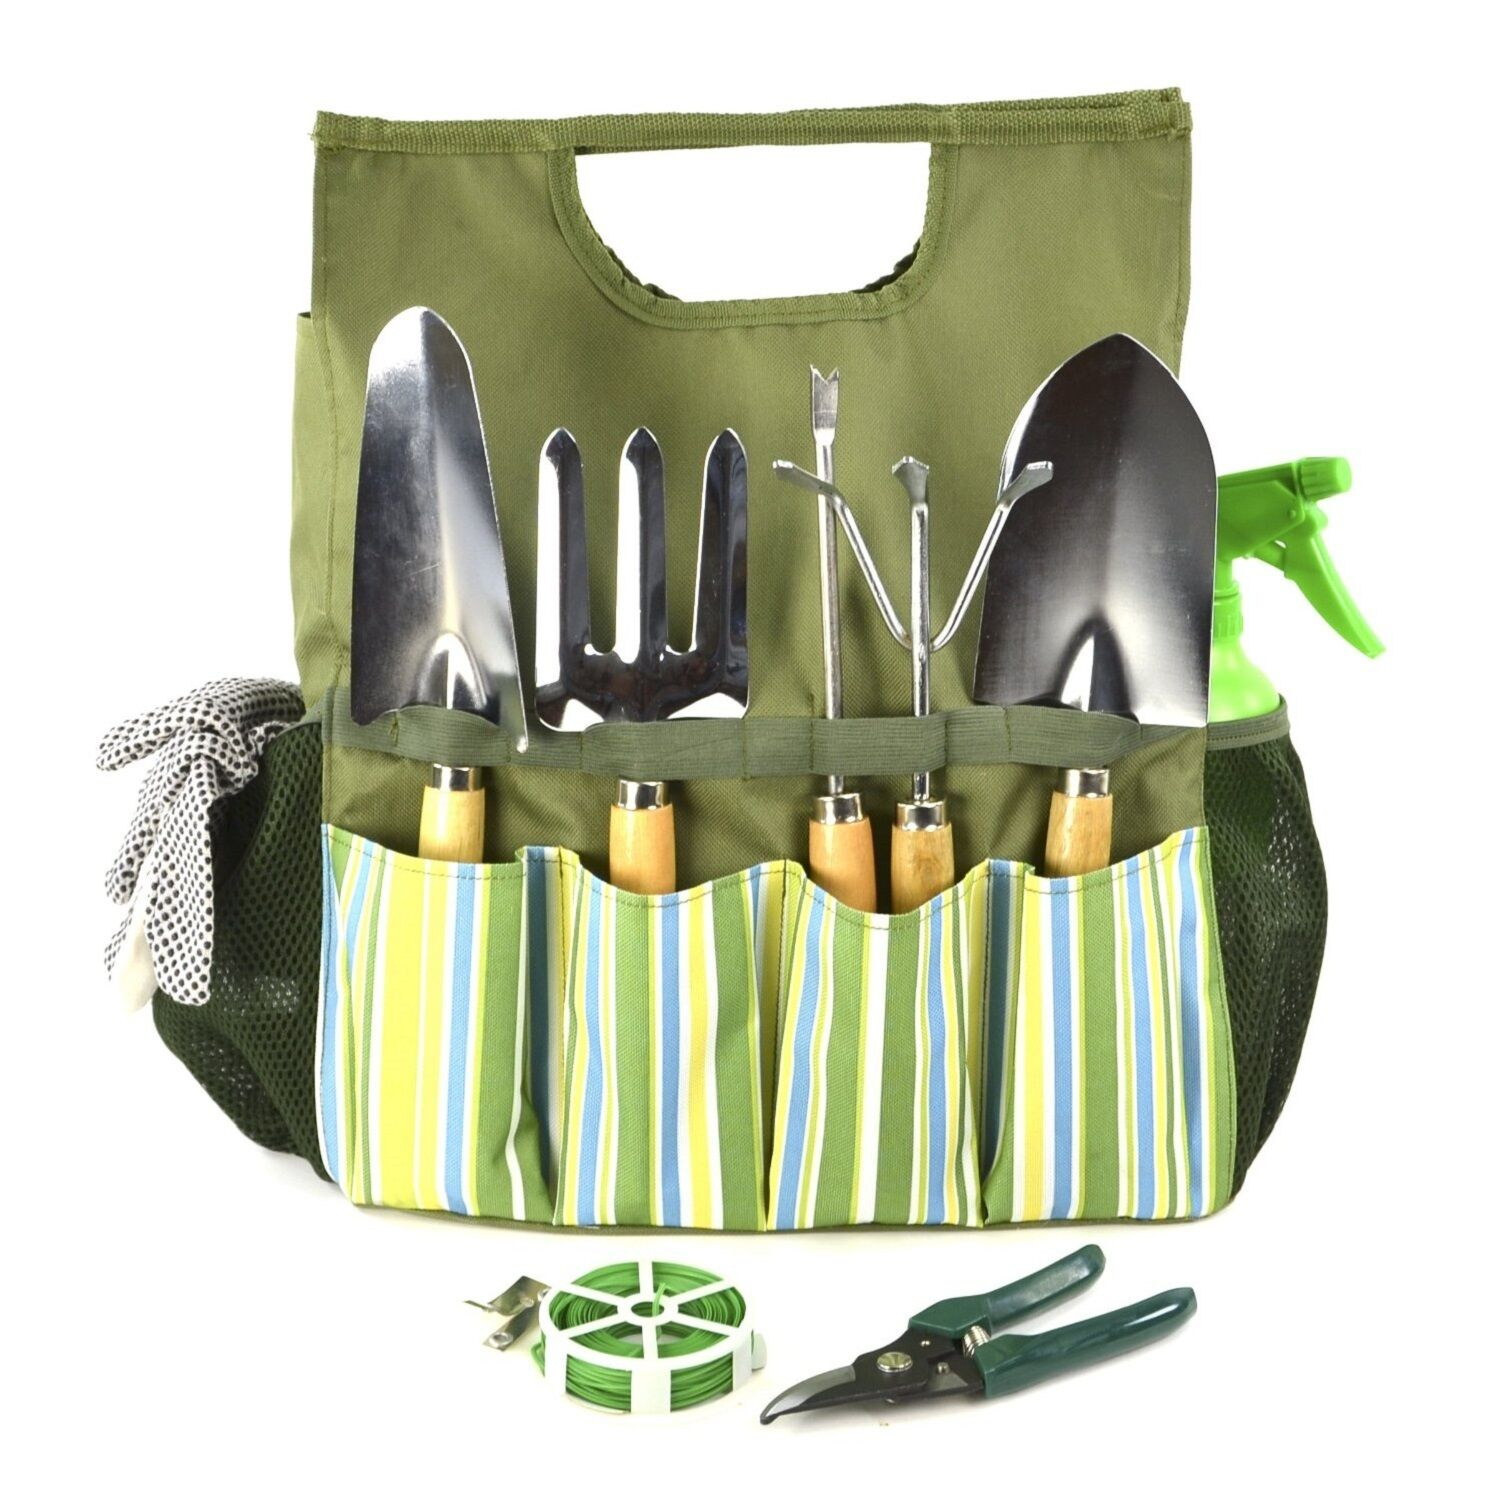 Gardening planting hand tools set and tool bag garden for Gardening tools kit set